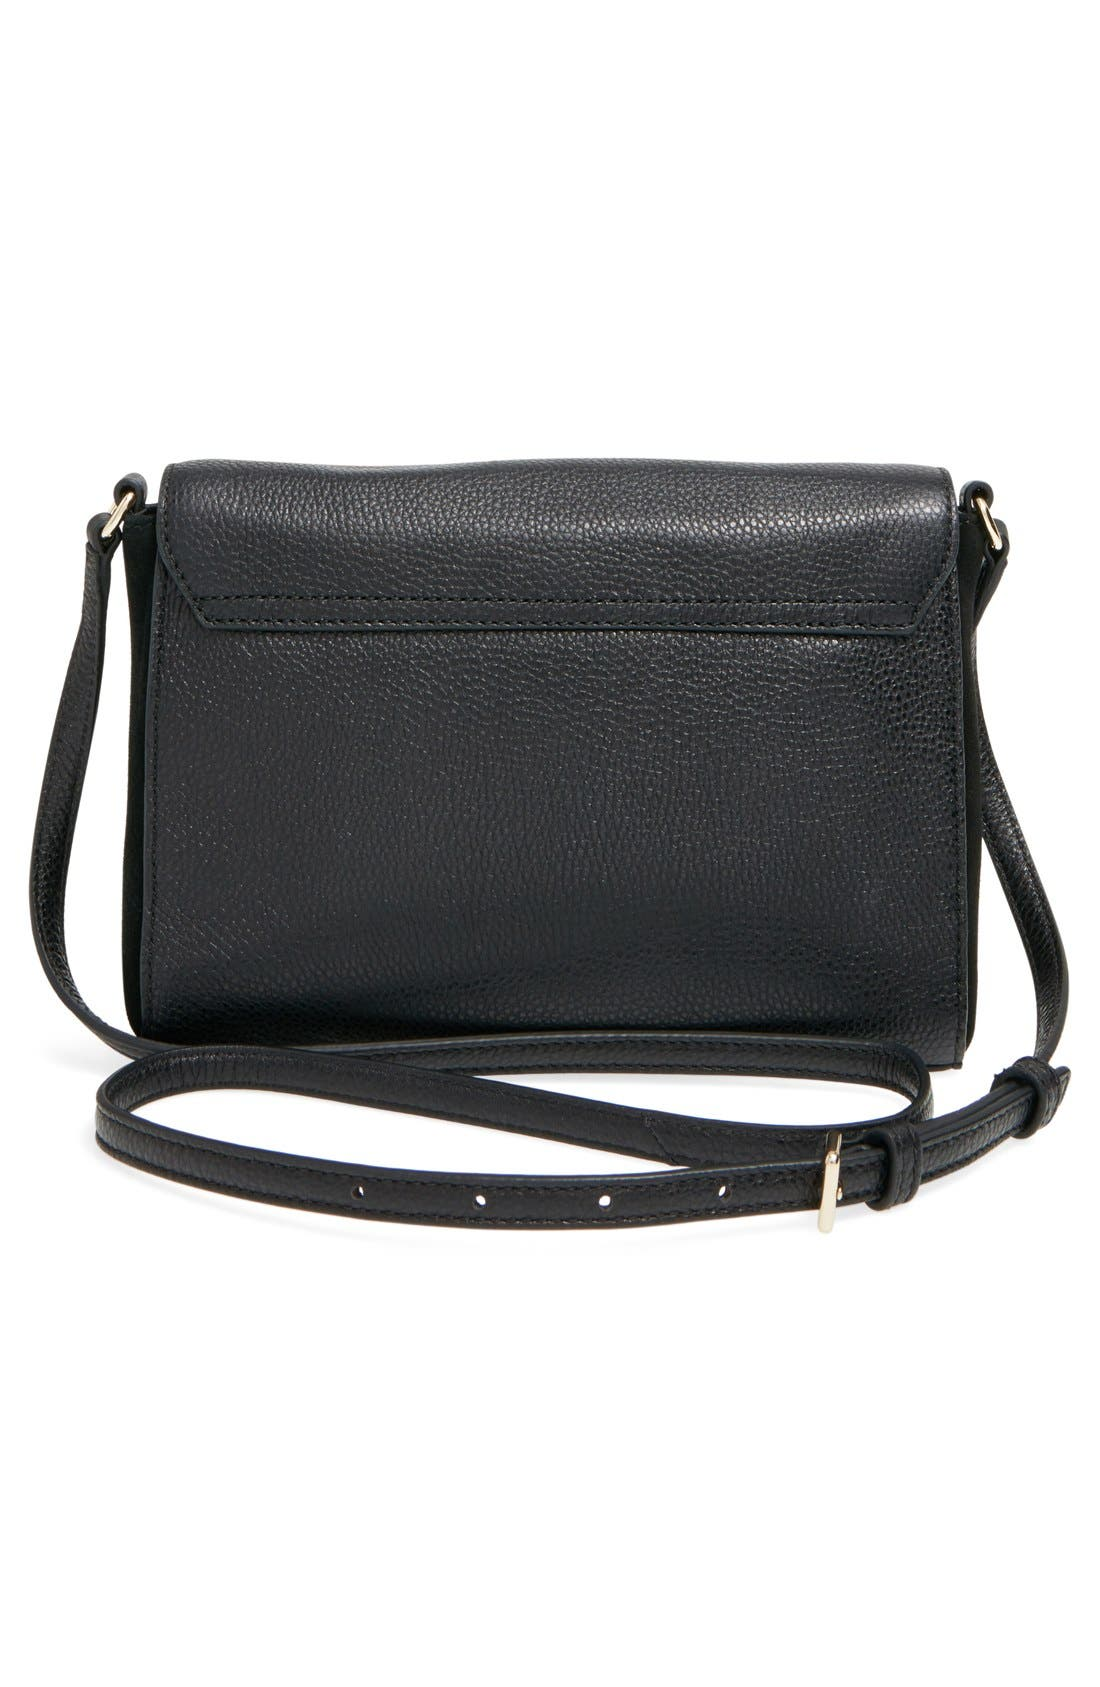 Alternate Image 3  - kate spade new york 'matthews drive - patty' leather & suede crossbody bag